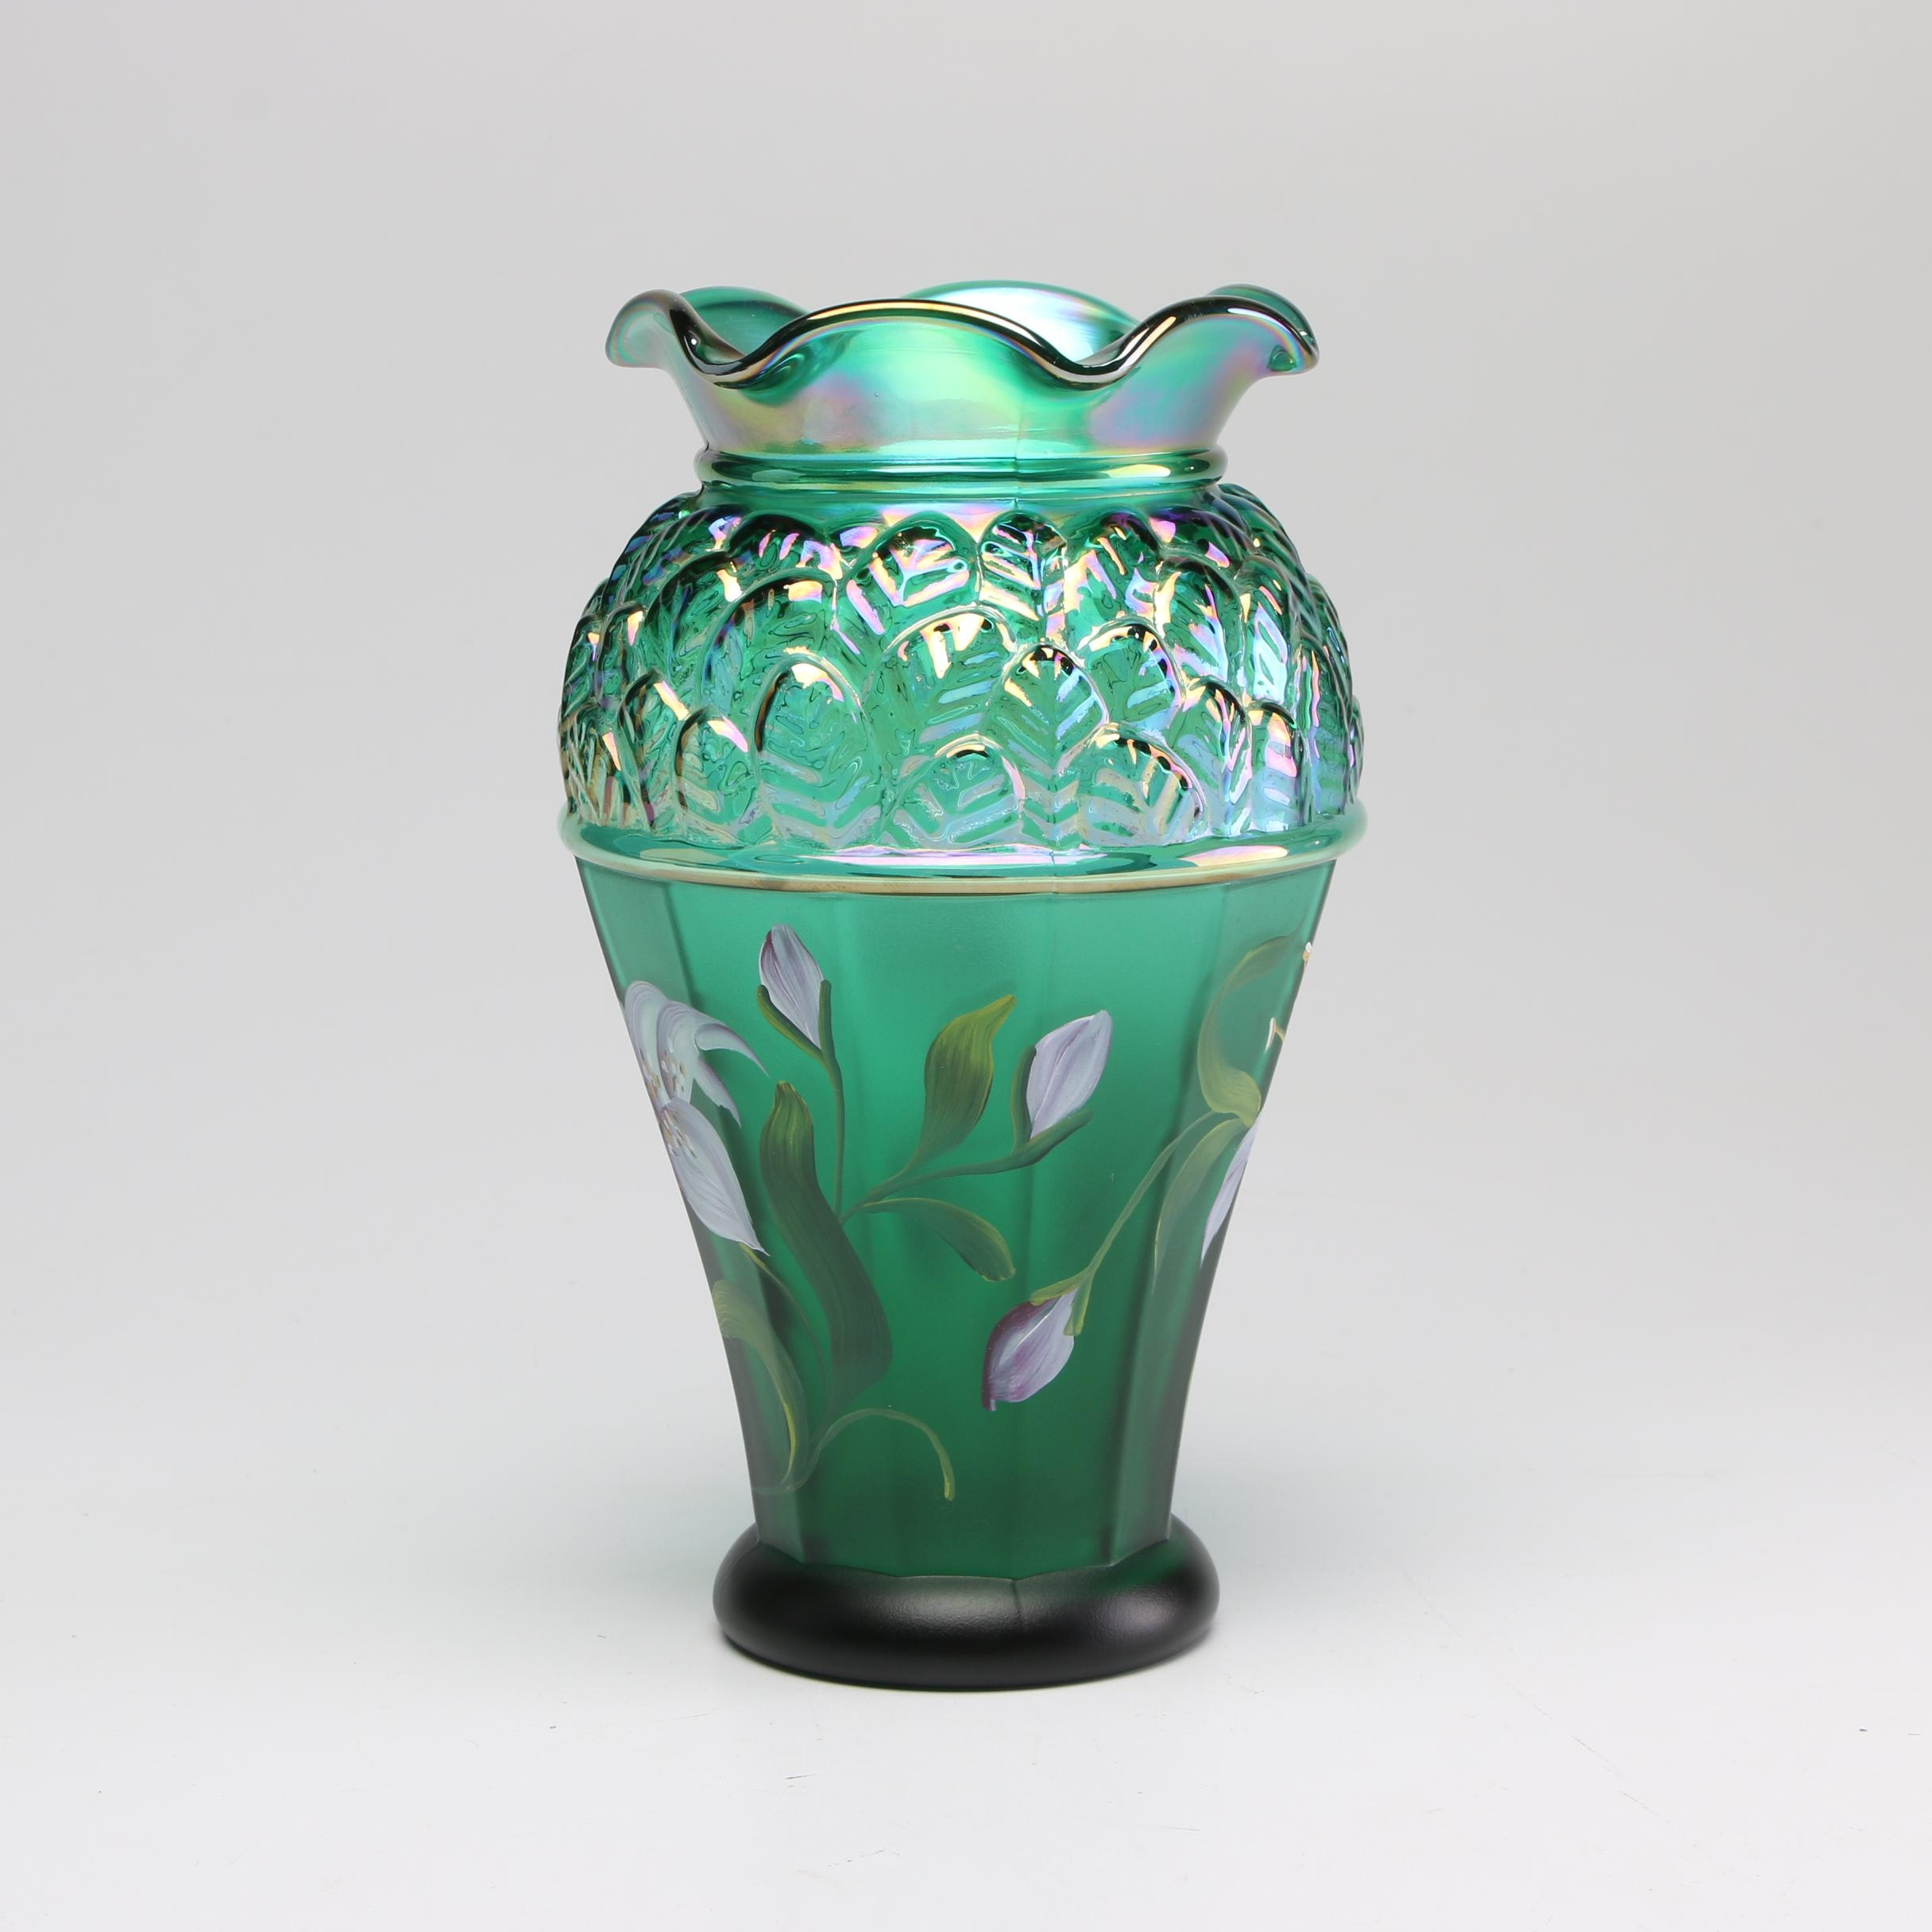 Hand-Painted Fenton Glass Vase from the Designer Showcase Series